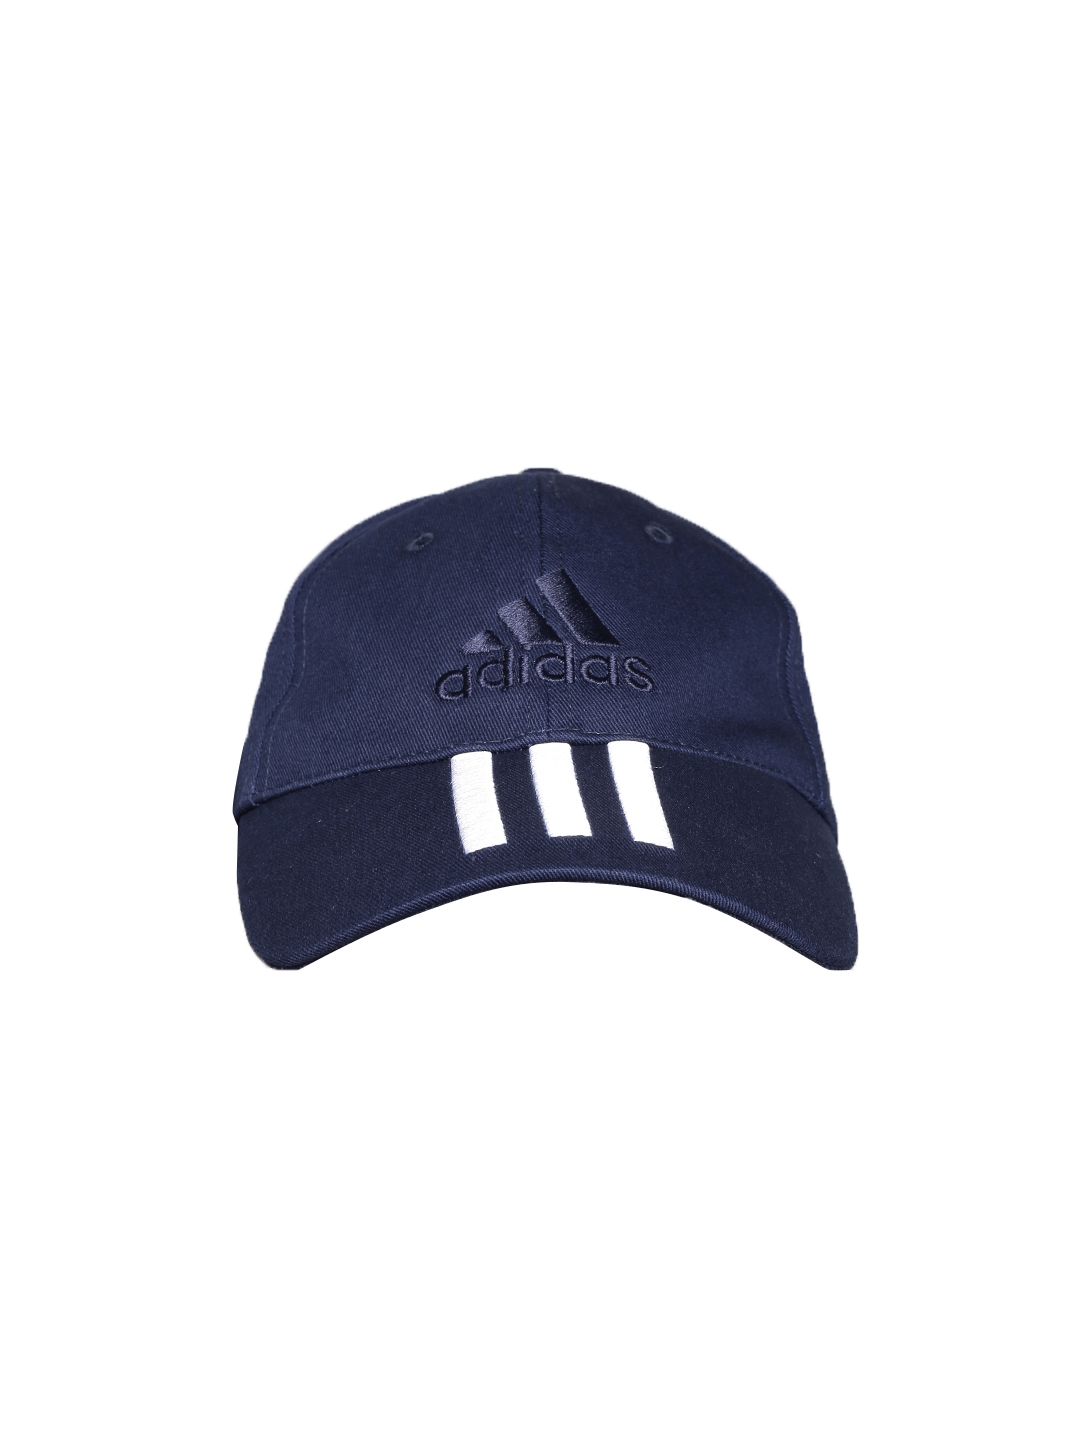 390fcae84f4 Buy ADIDAS Unisex Navy 6 Panel 3 Stripes Cotton Training Cap - Caps ...